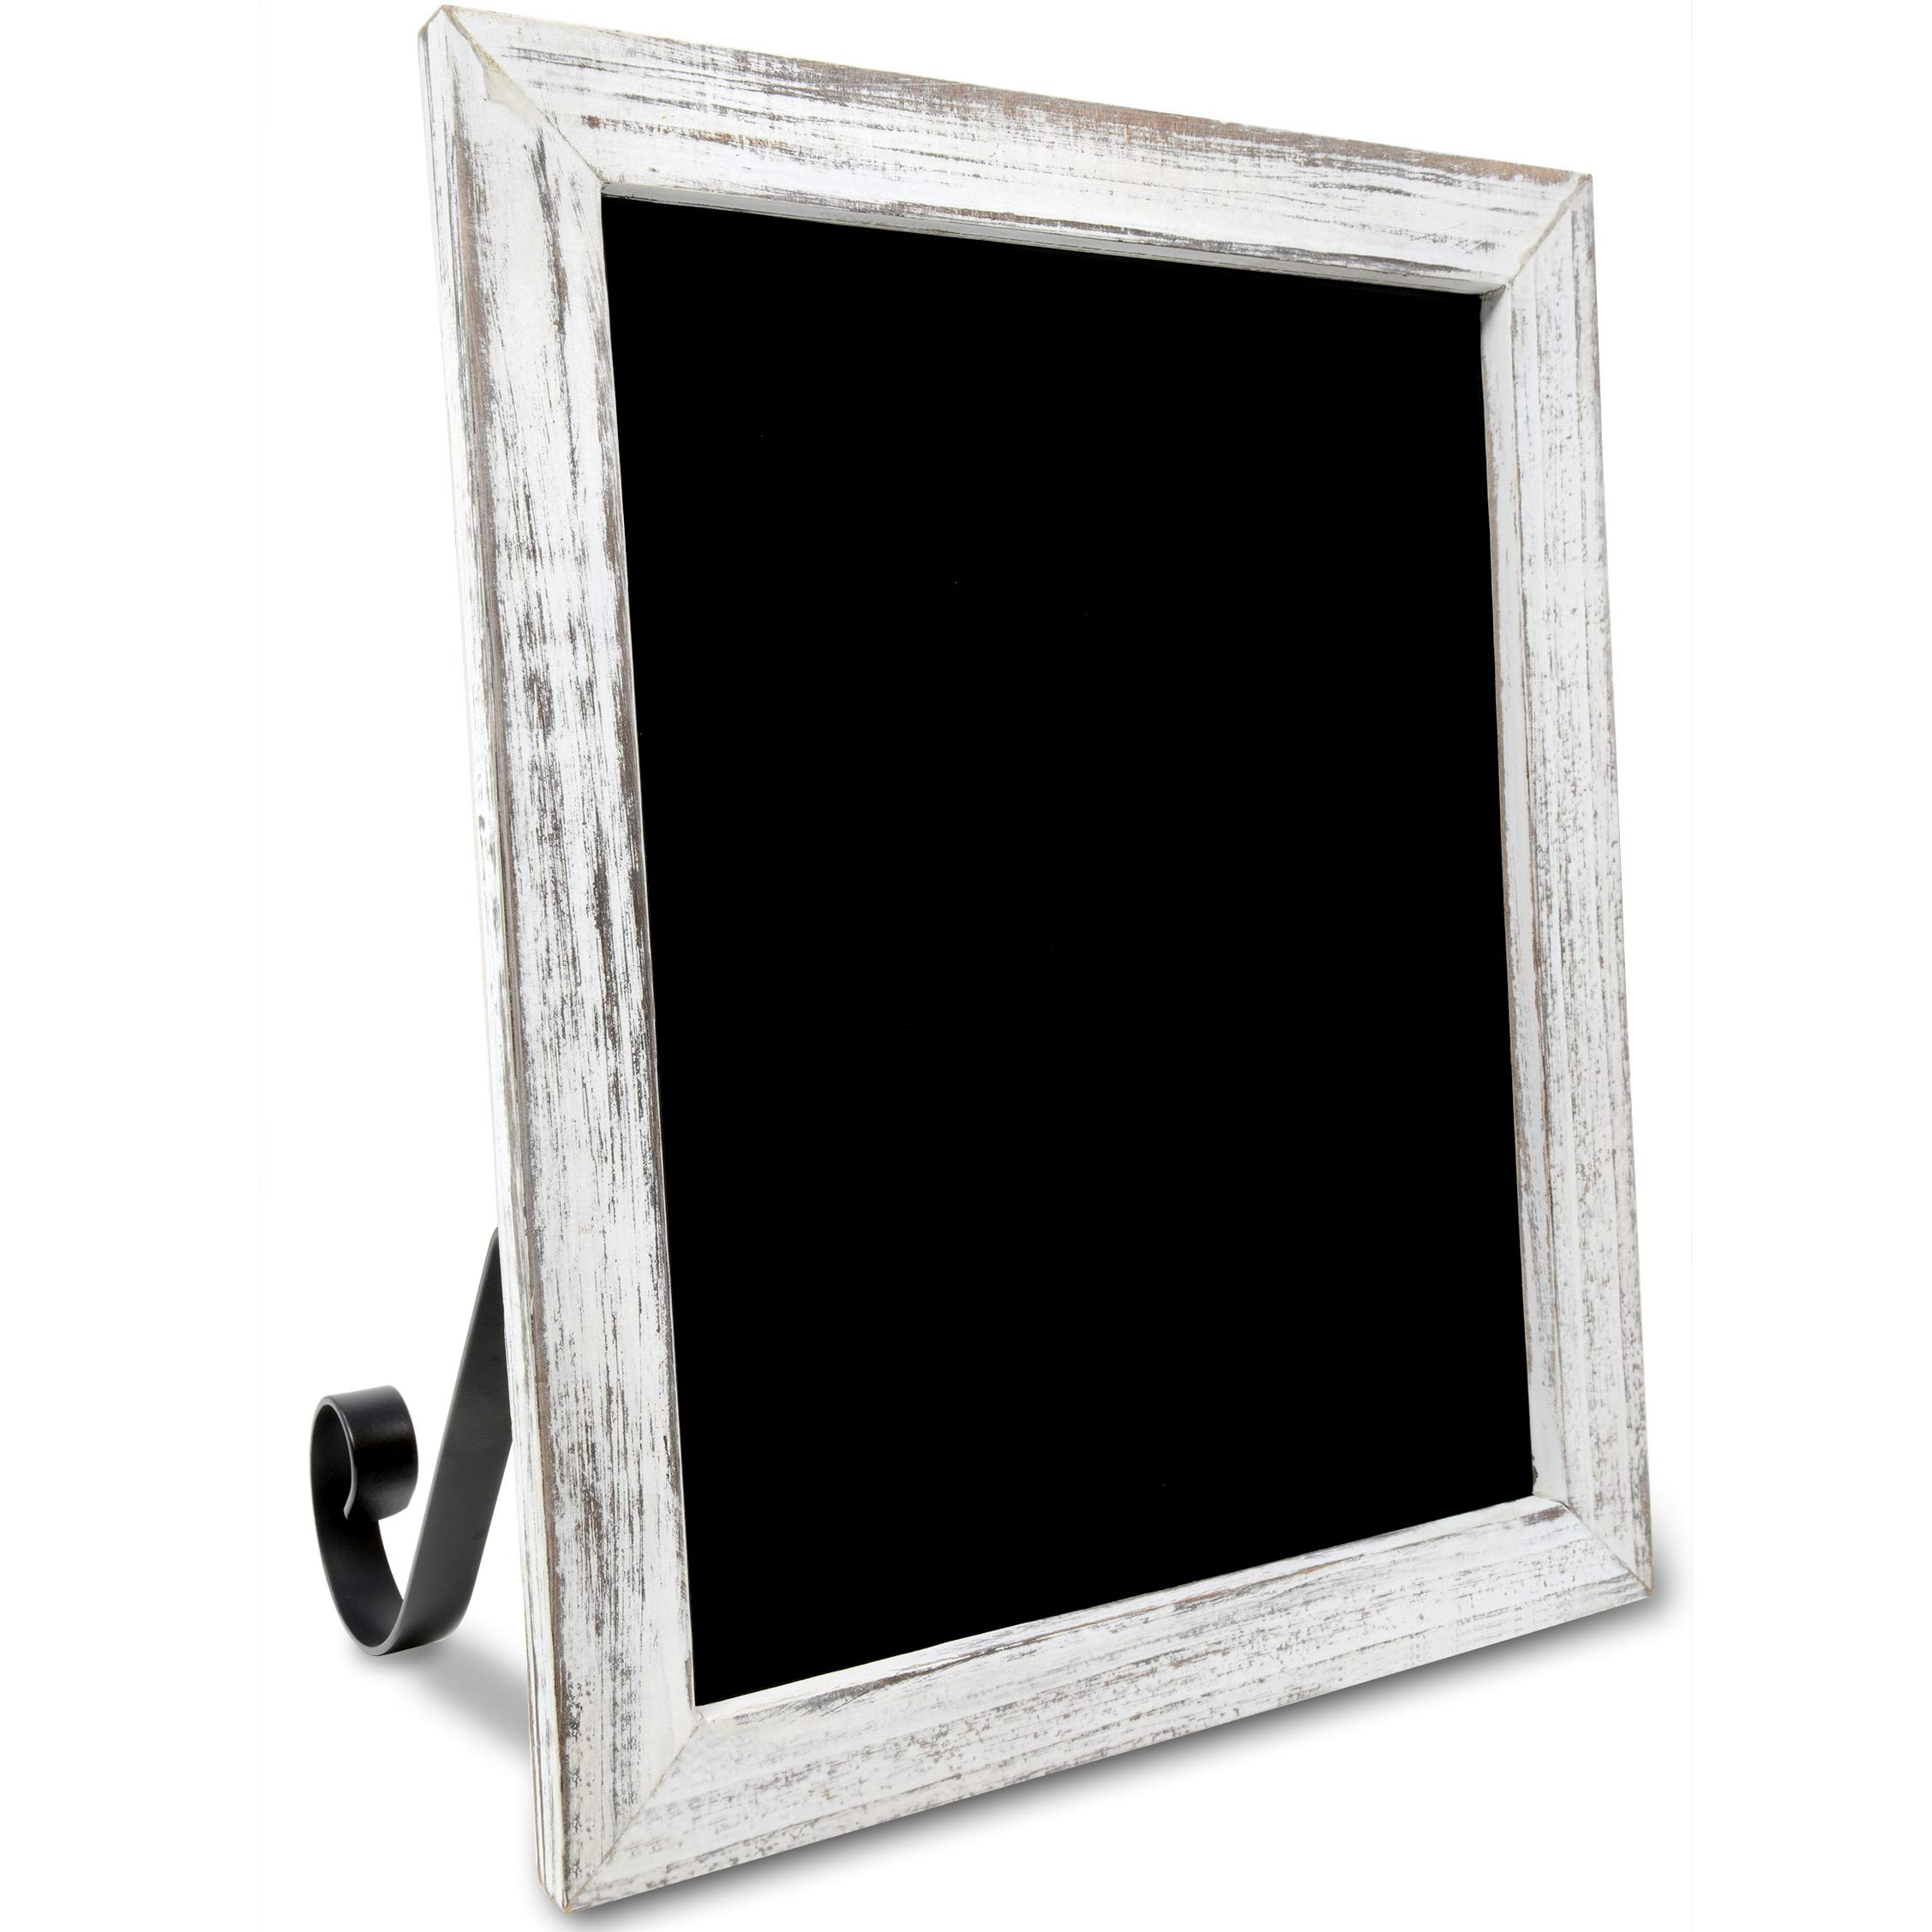 TenXVI Designs Freestanding Chalkboard Sign - Multiple Colors and Sizes - for Weddings, Tabletops, Countertops, Restaurants, Kitchens, Rustic Home Décor by TenXVI Designs